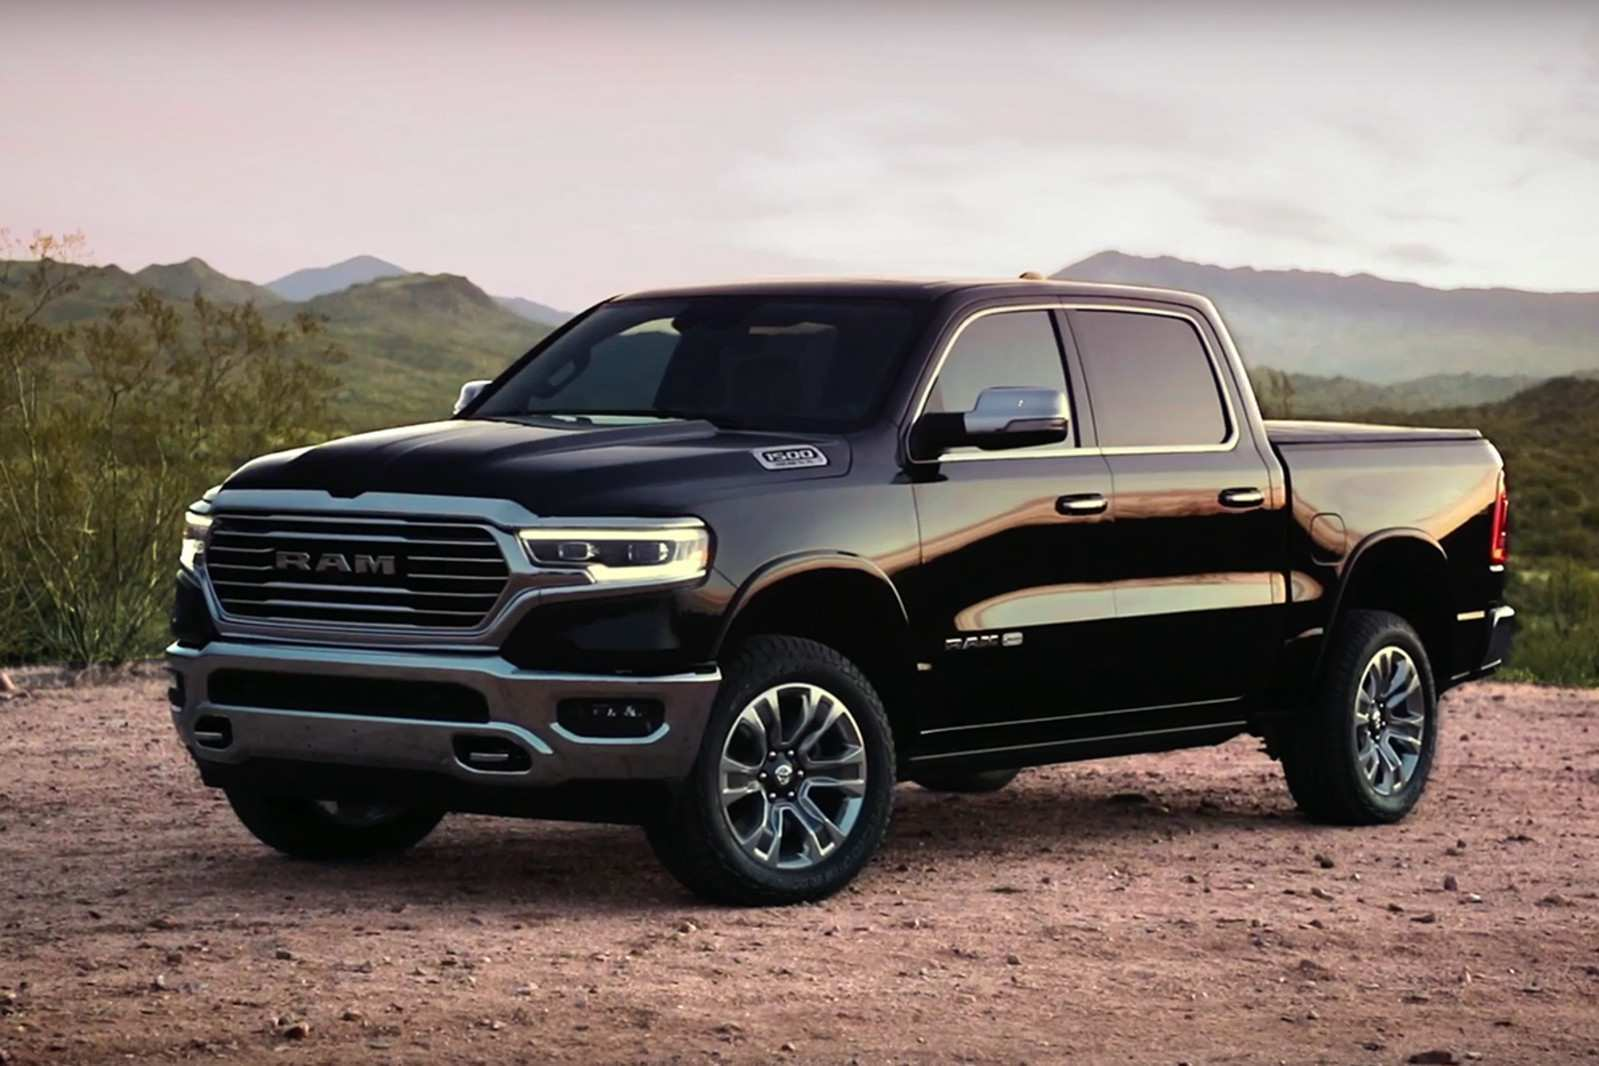 42 New The When Can You Buy A 2019 Dodge Ram Release Date Exterior with The When Can You Buy A 2019 Dodge Ram Release Date